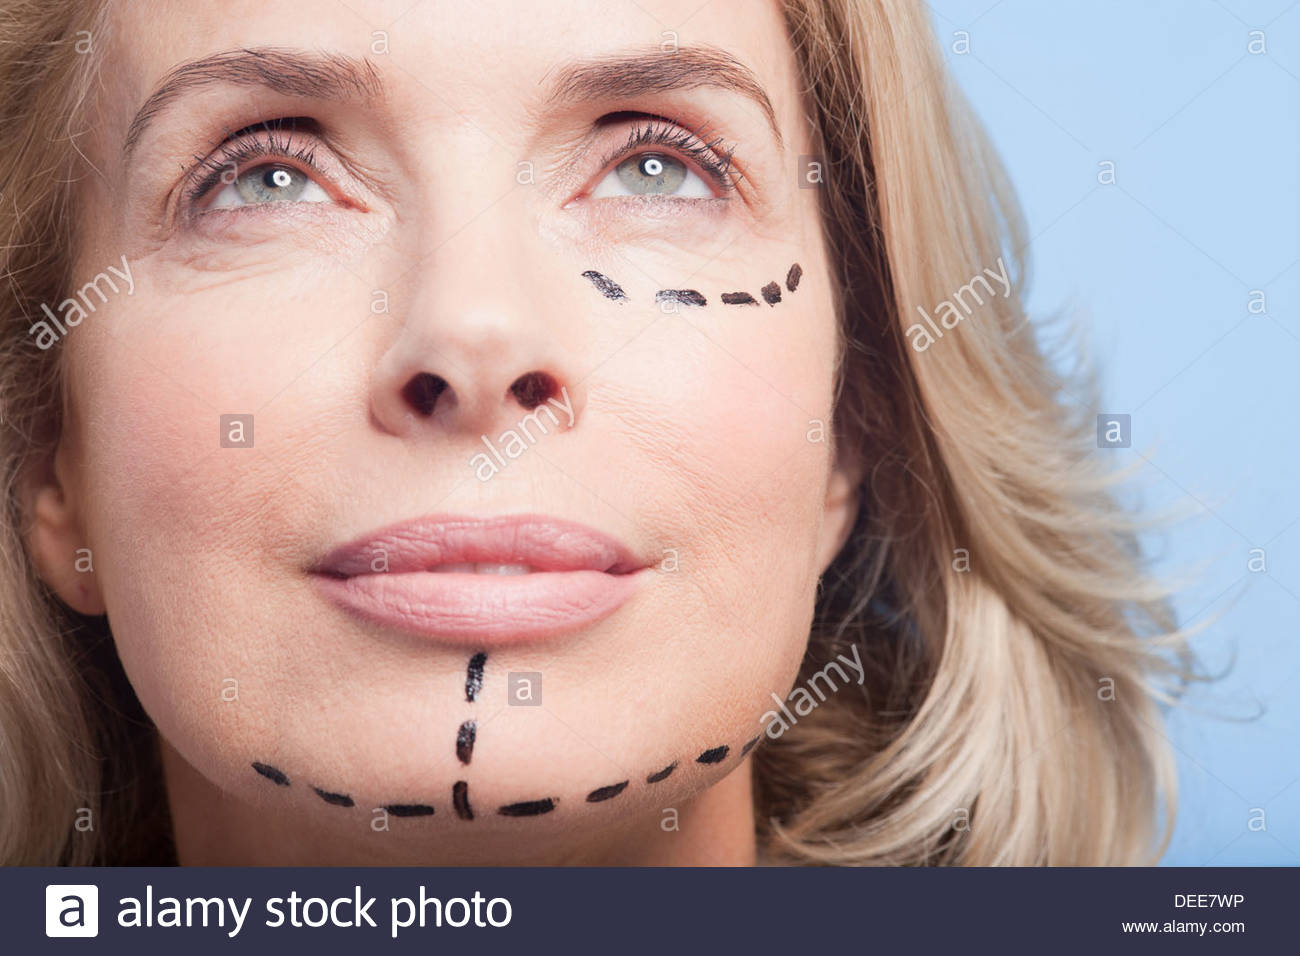 Close up portrait of woman with dotted lines on face - Stock Image